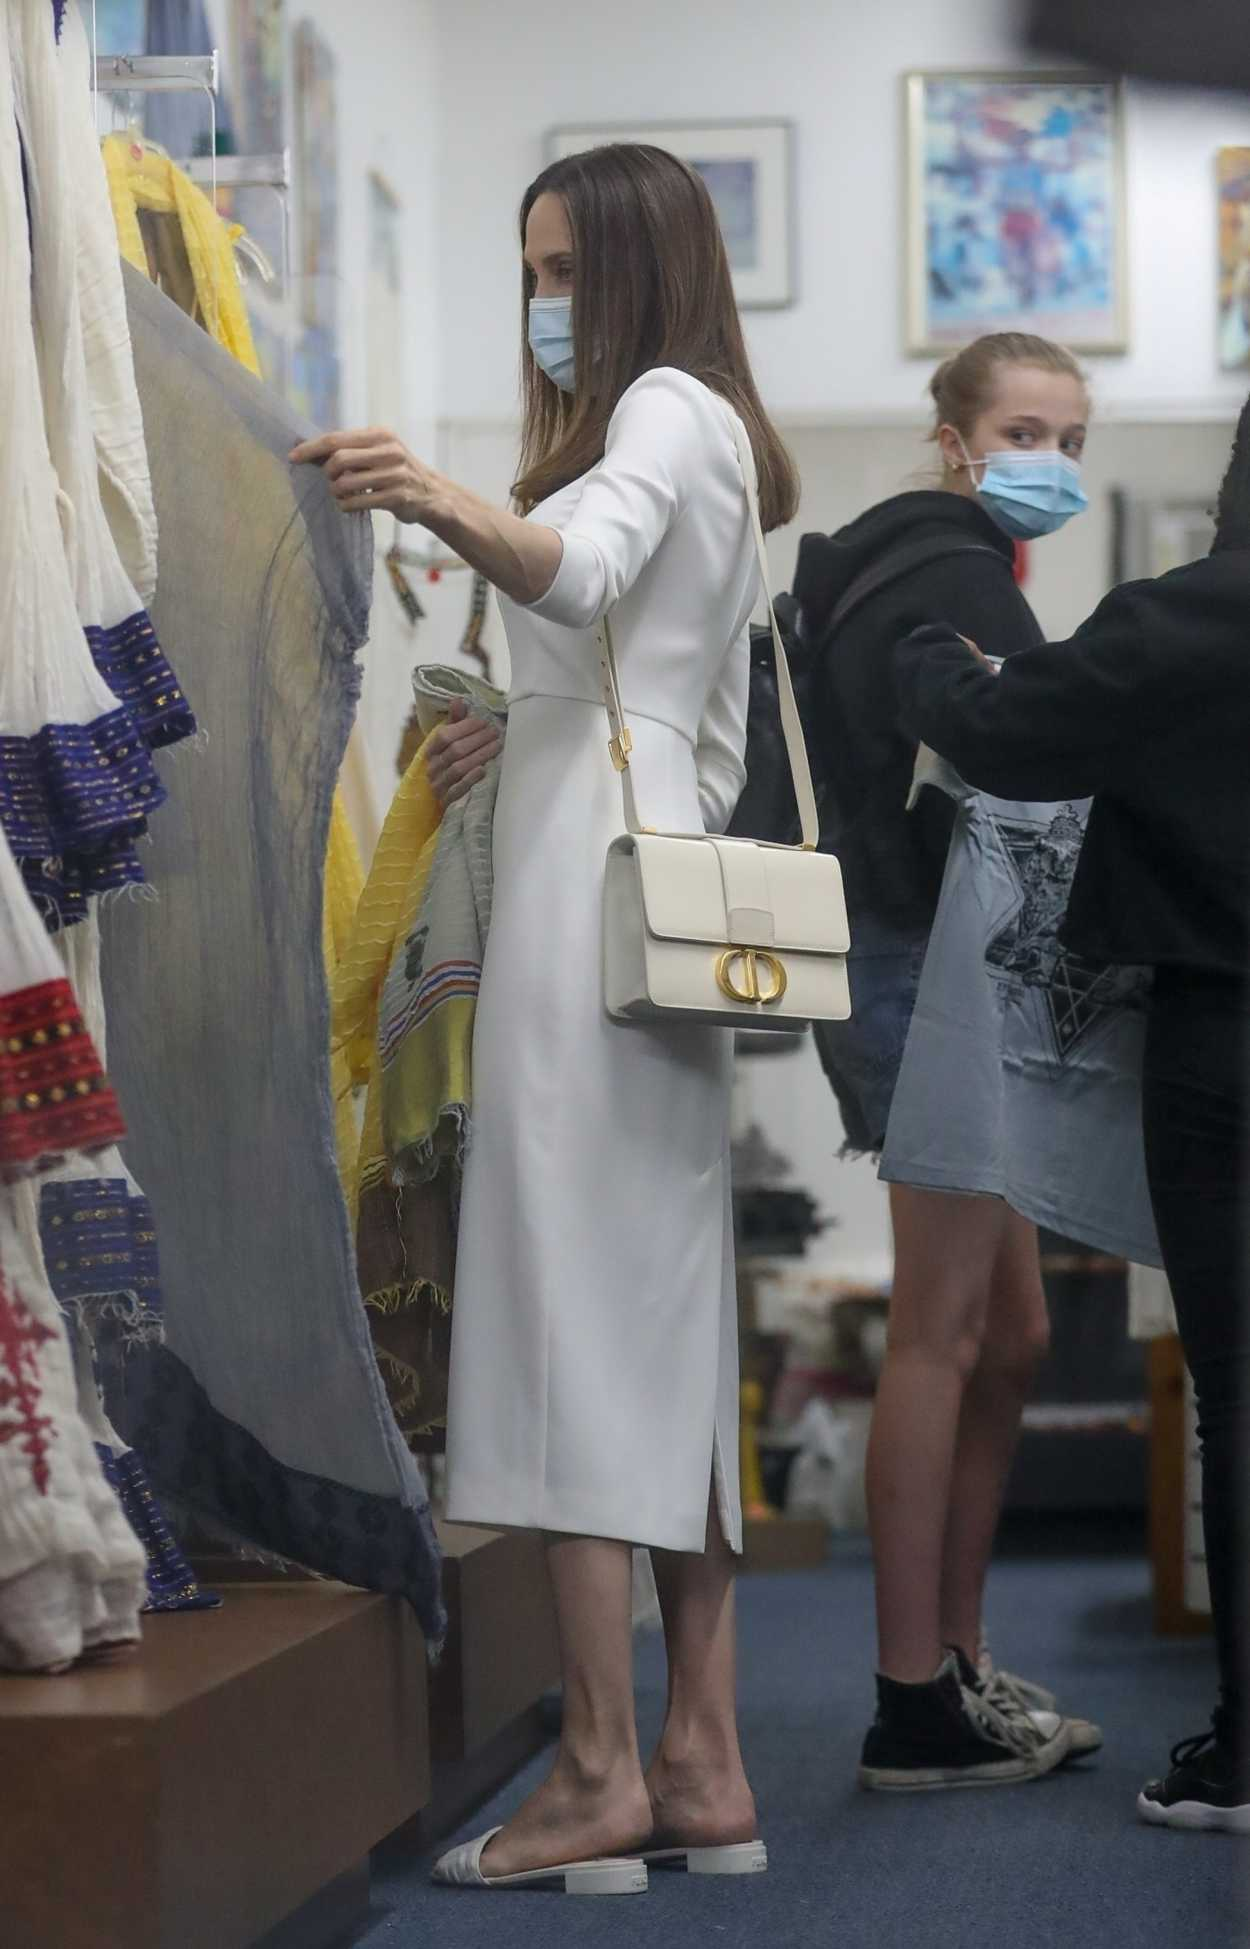 Angelina Jolie in a White Dress Goes Shopping at Ethiopian ...